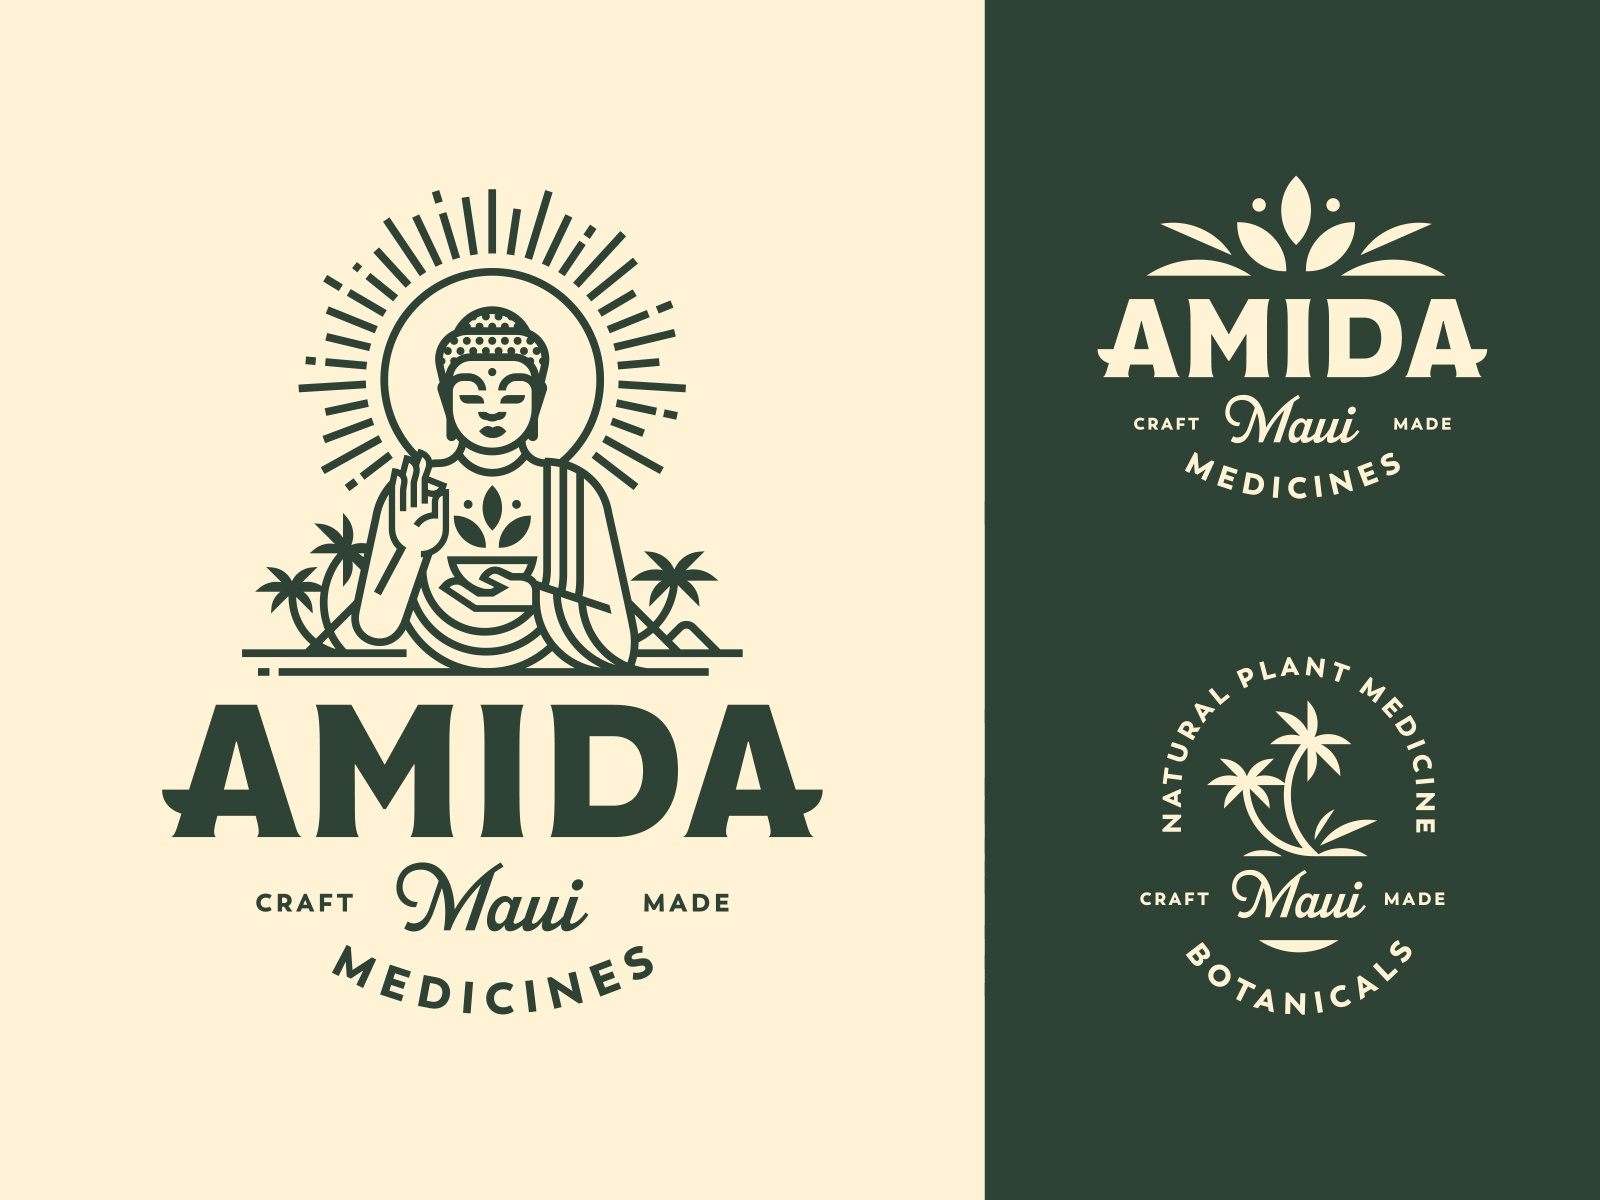 Logo Design Inspiration: A roundup by Alexandra Zutto, Ryan Prudhomme and more